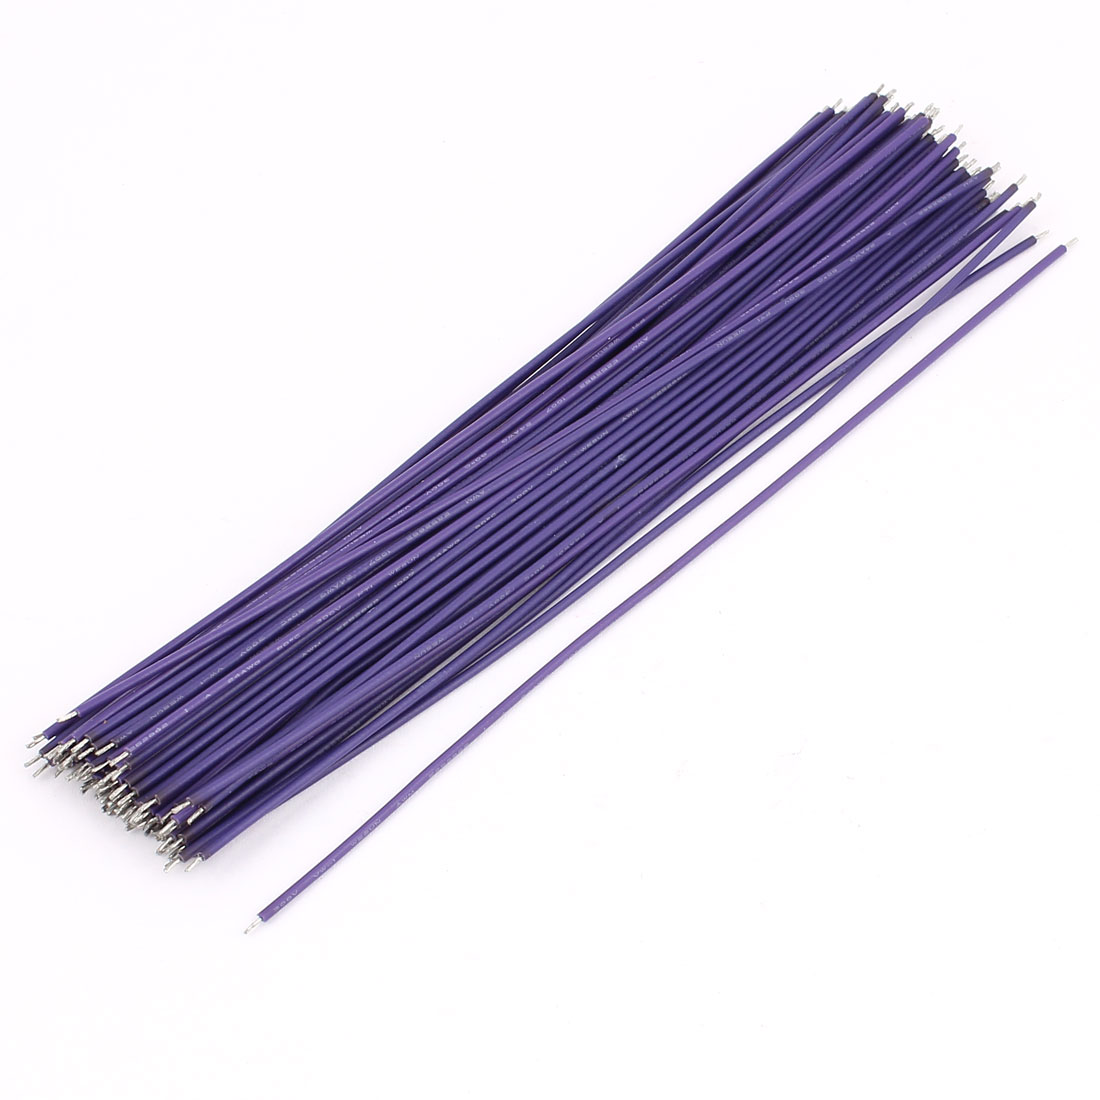 72pcs Purple PVC Insulated Wrap Flexible PCB Soldering Motor Wire Cord 170mm Length